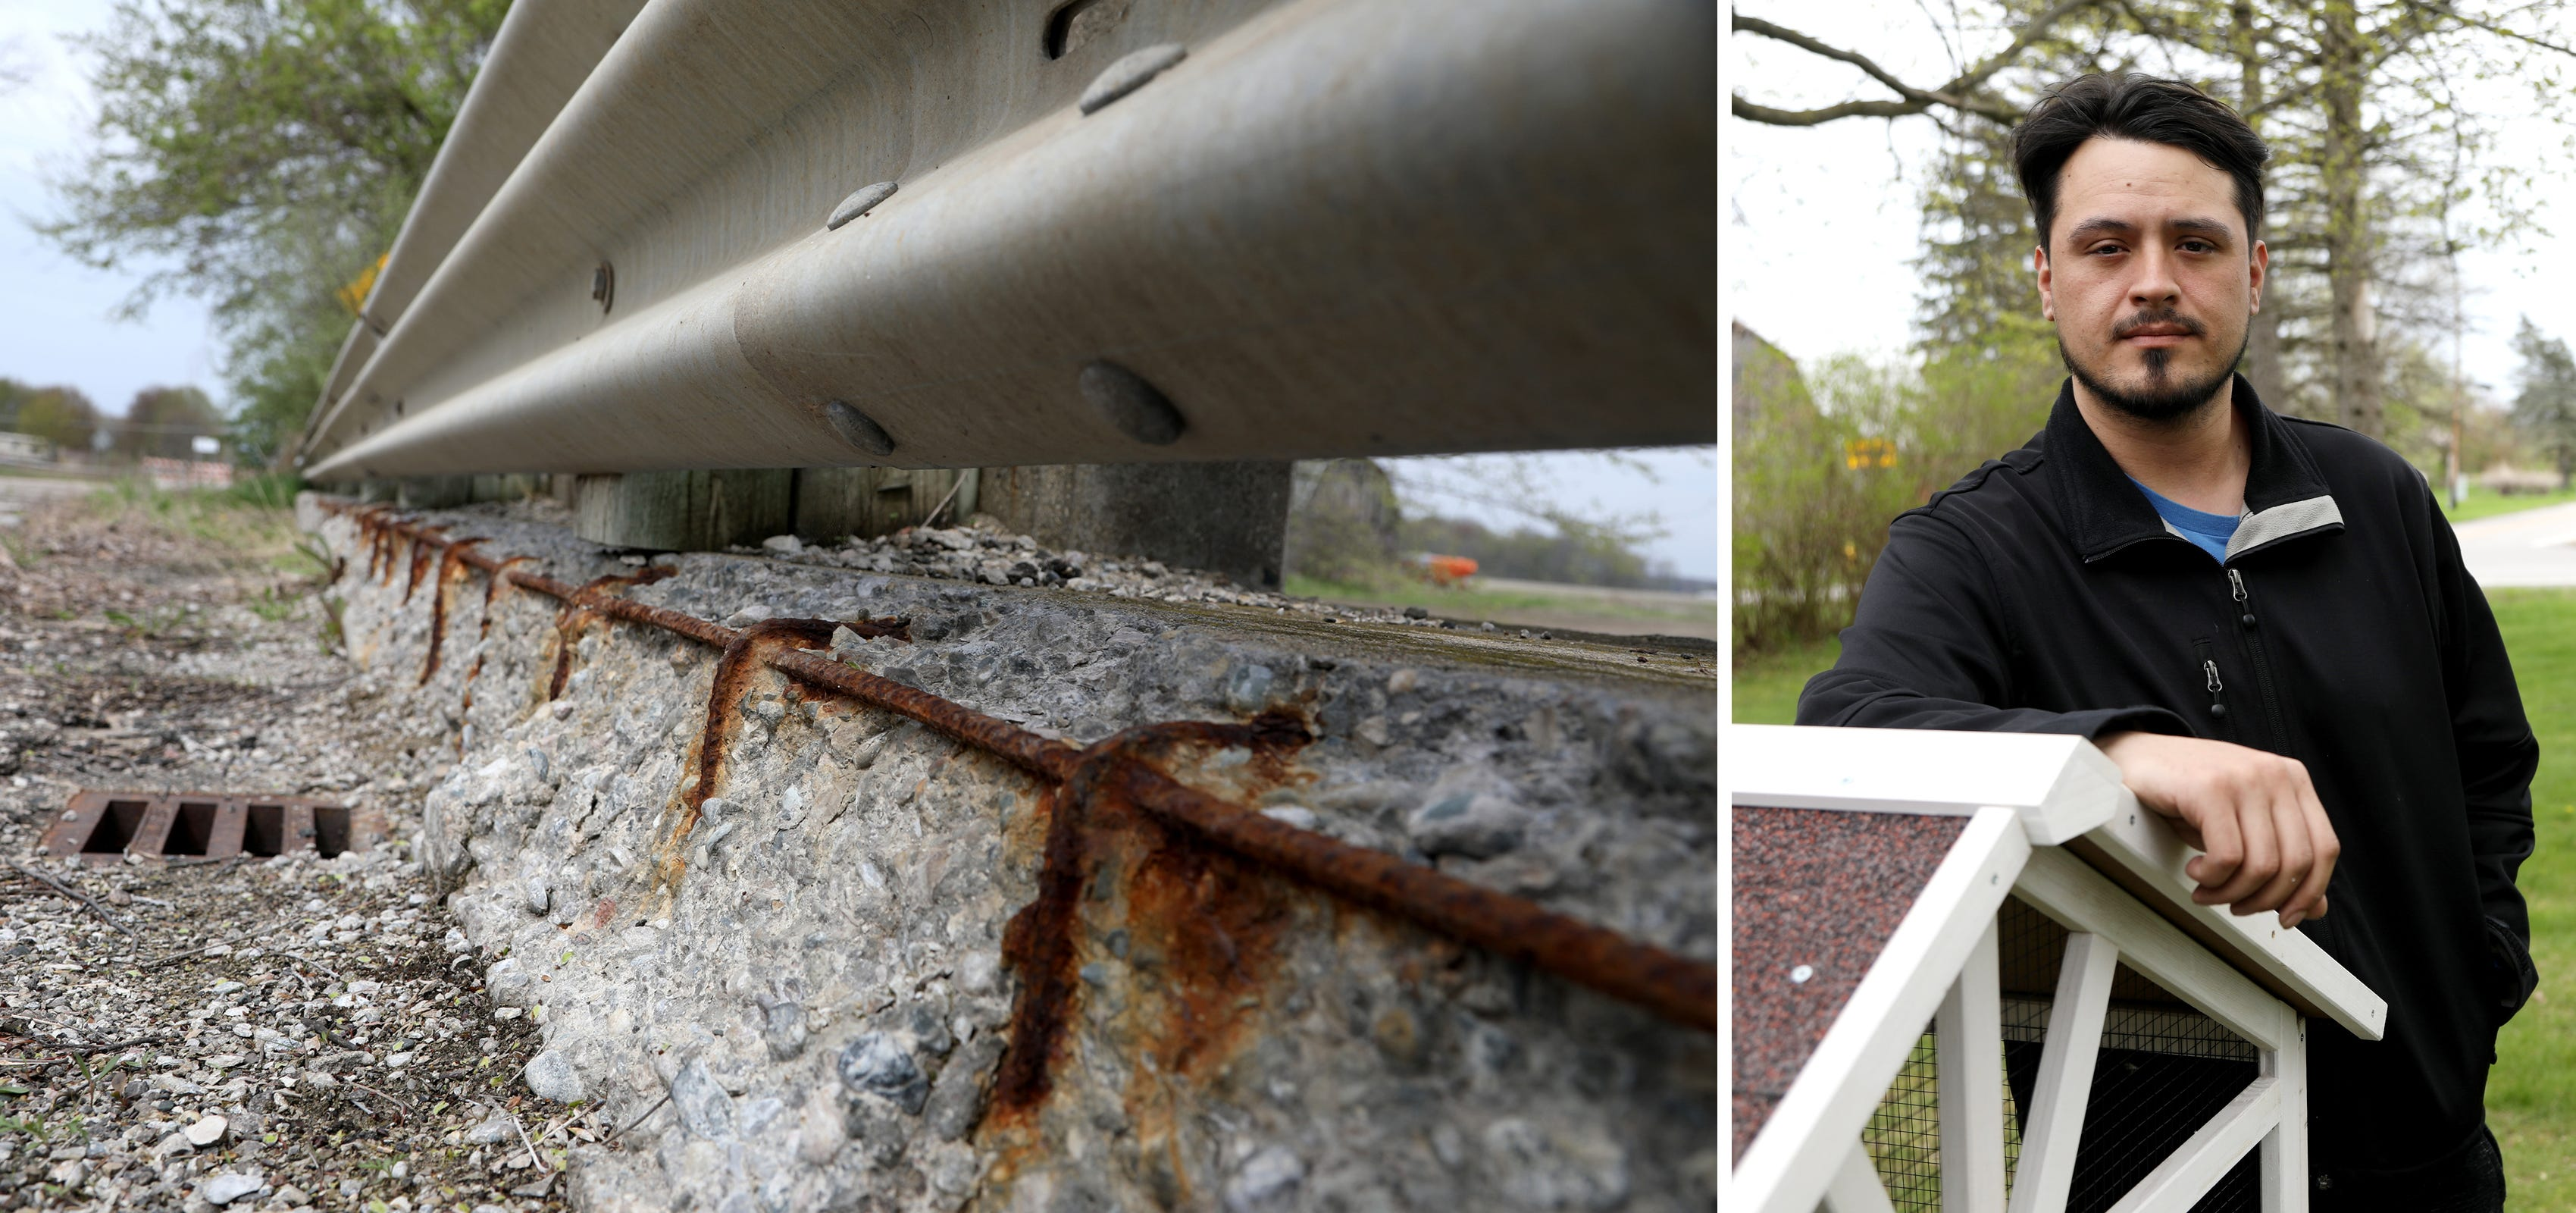 Robert Bradley's family lives near a closed bridge on 25 Mile Road near Card Road in Macomb Township. The bridge, which is closed, has exposed rebar, heavy rusting and crumbling concrete.